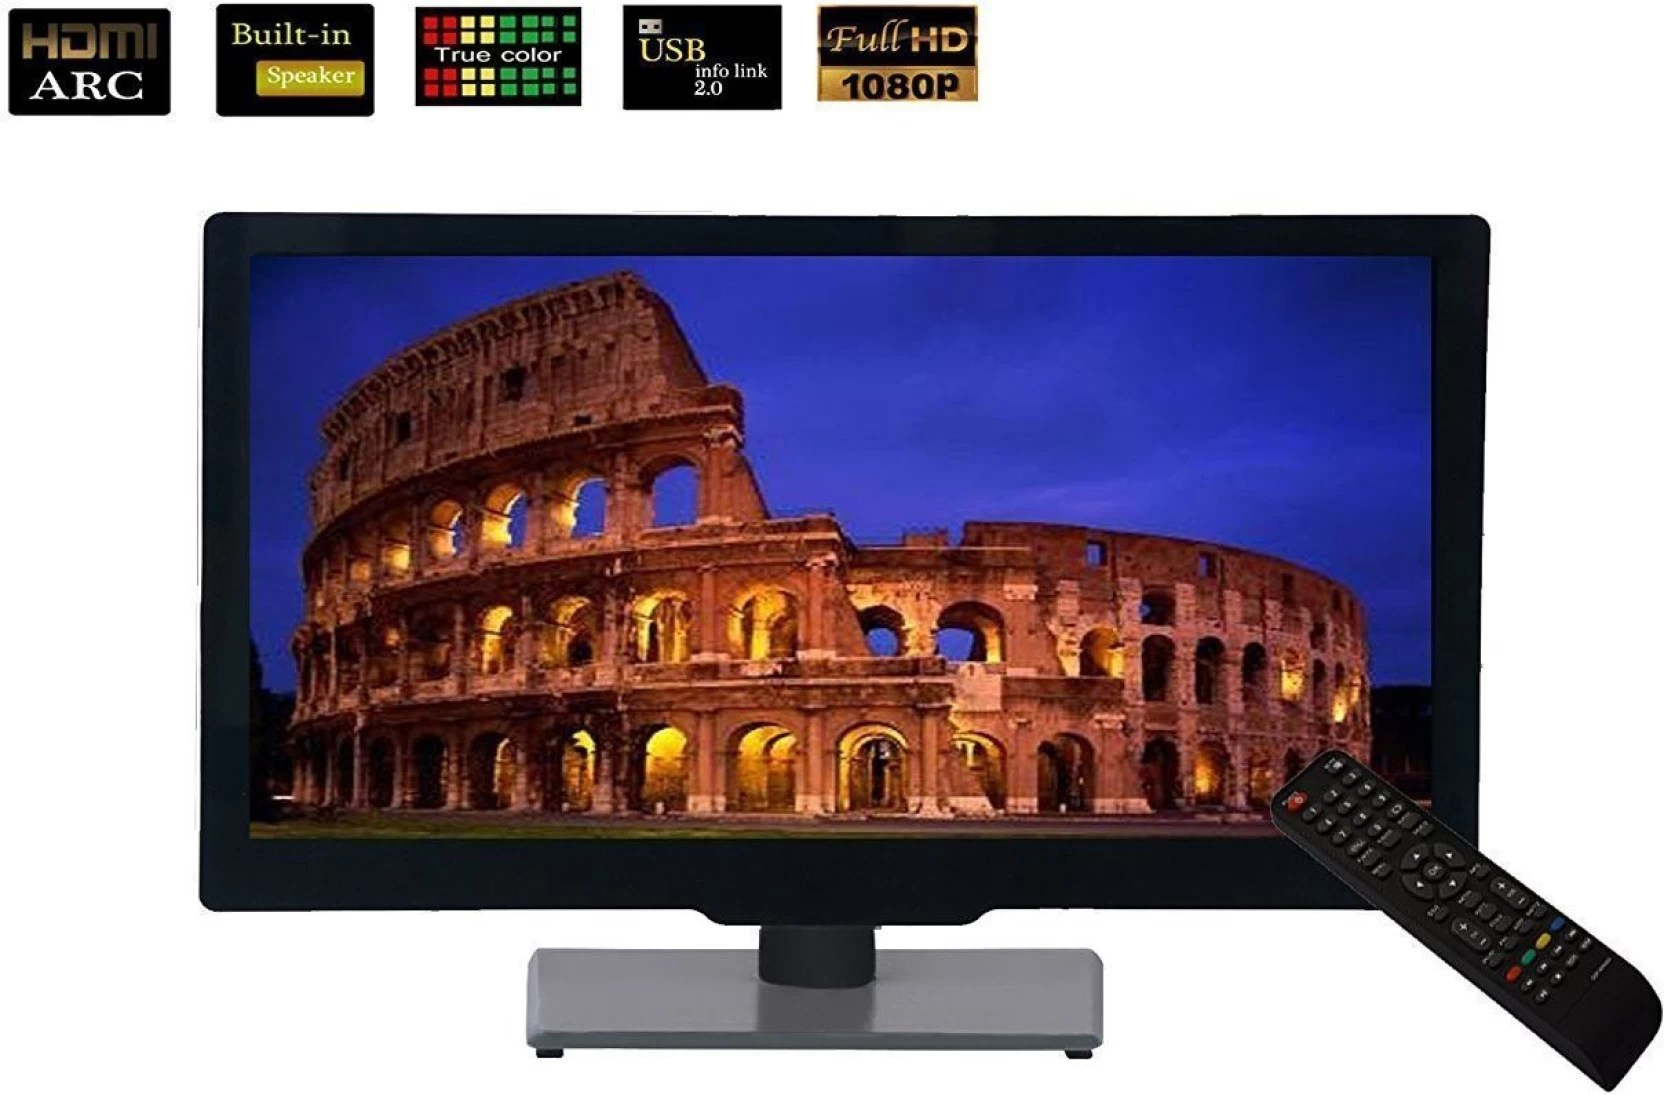 60cm Tv Hi Tech 60cm 24 Inch Hd Ready Led Tv